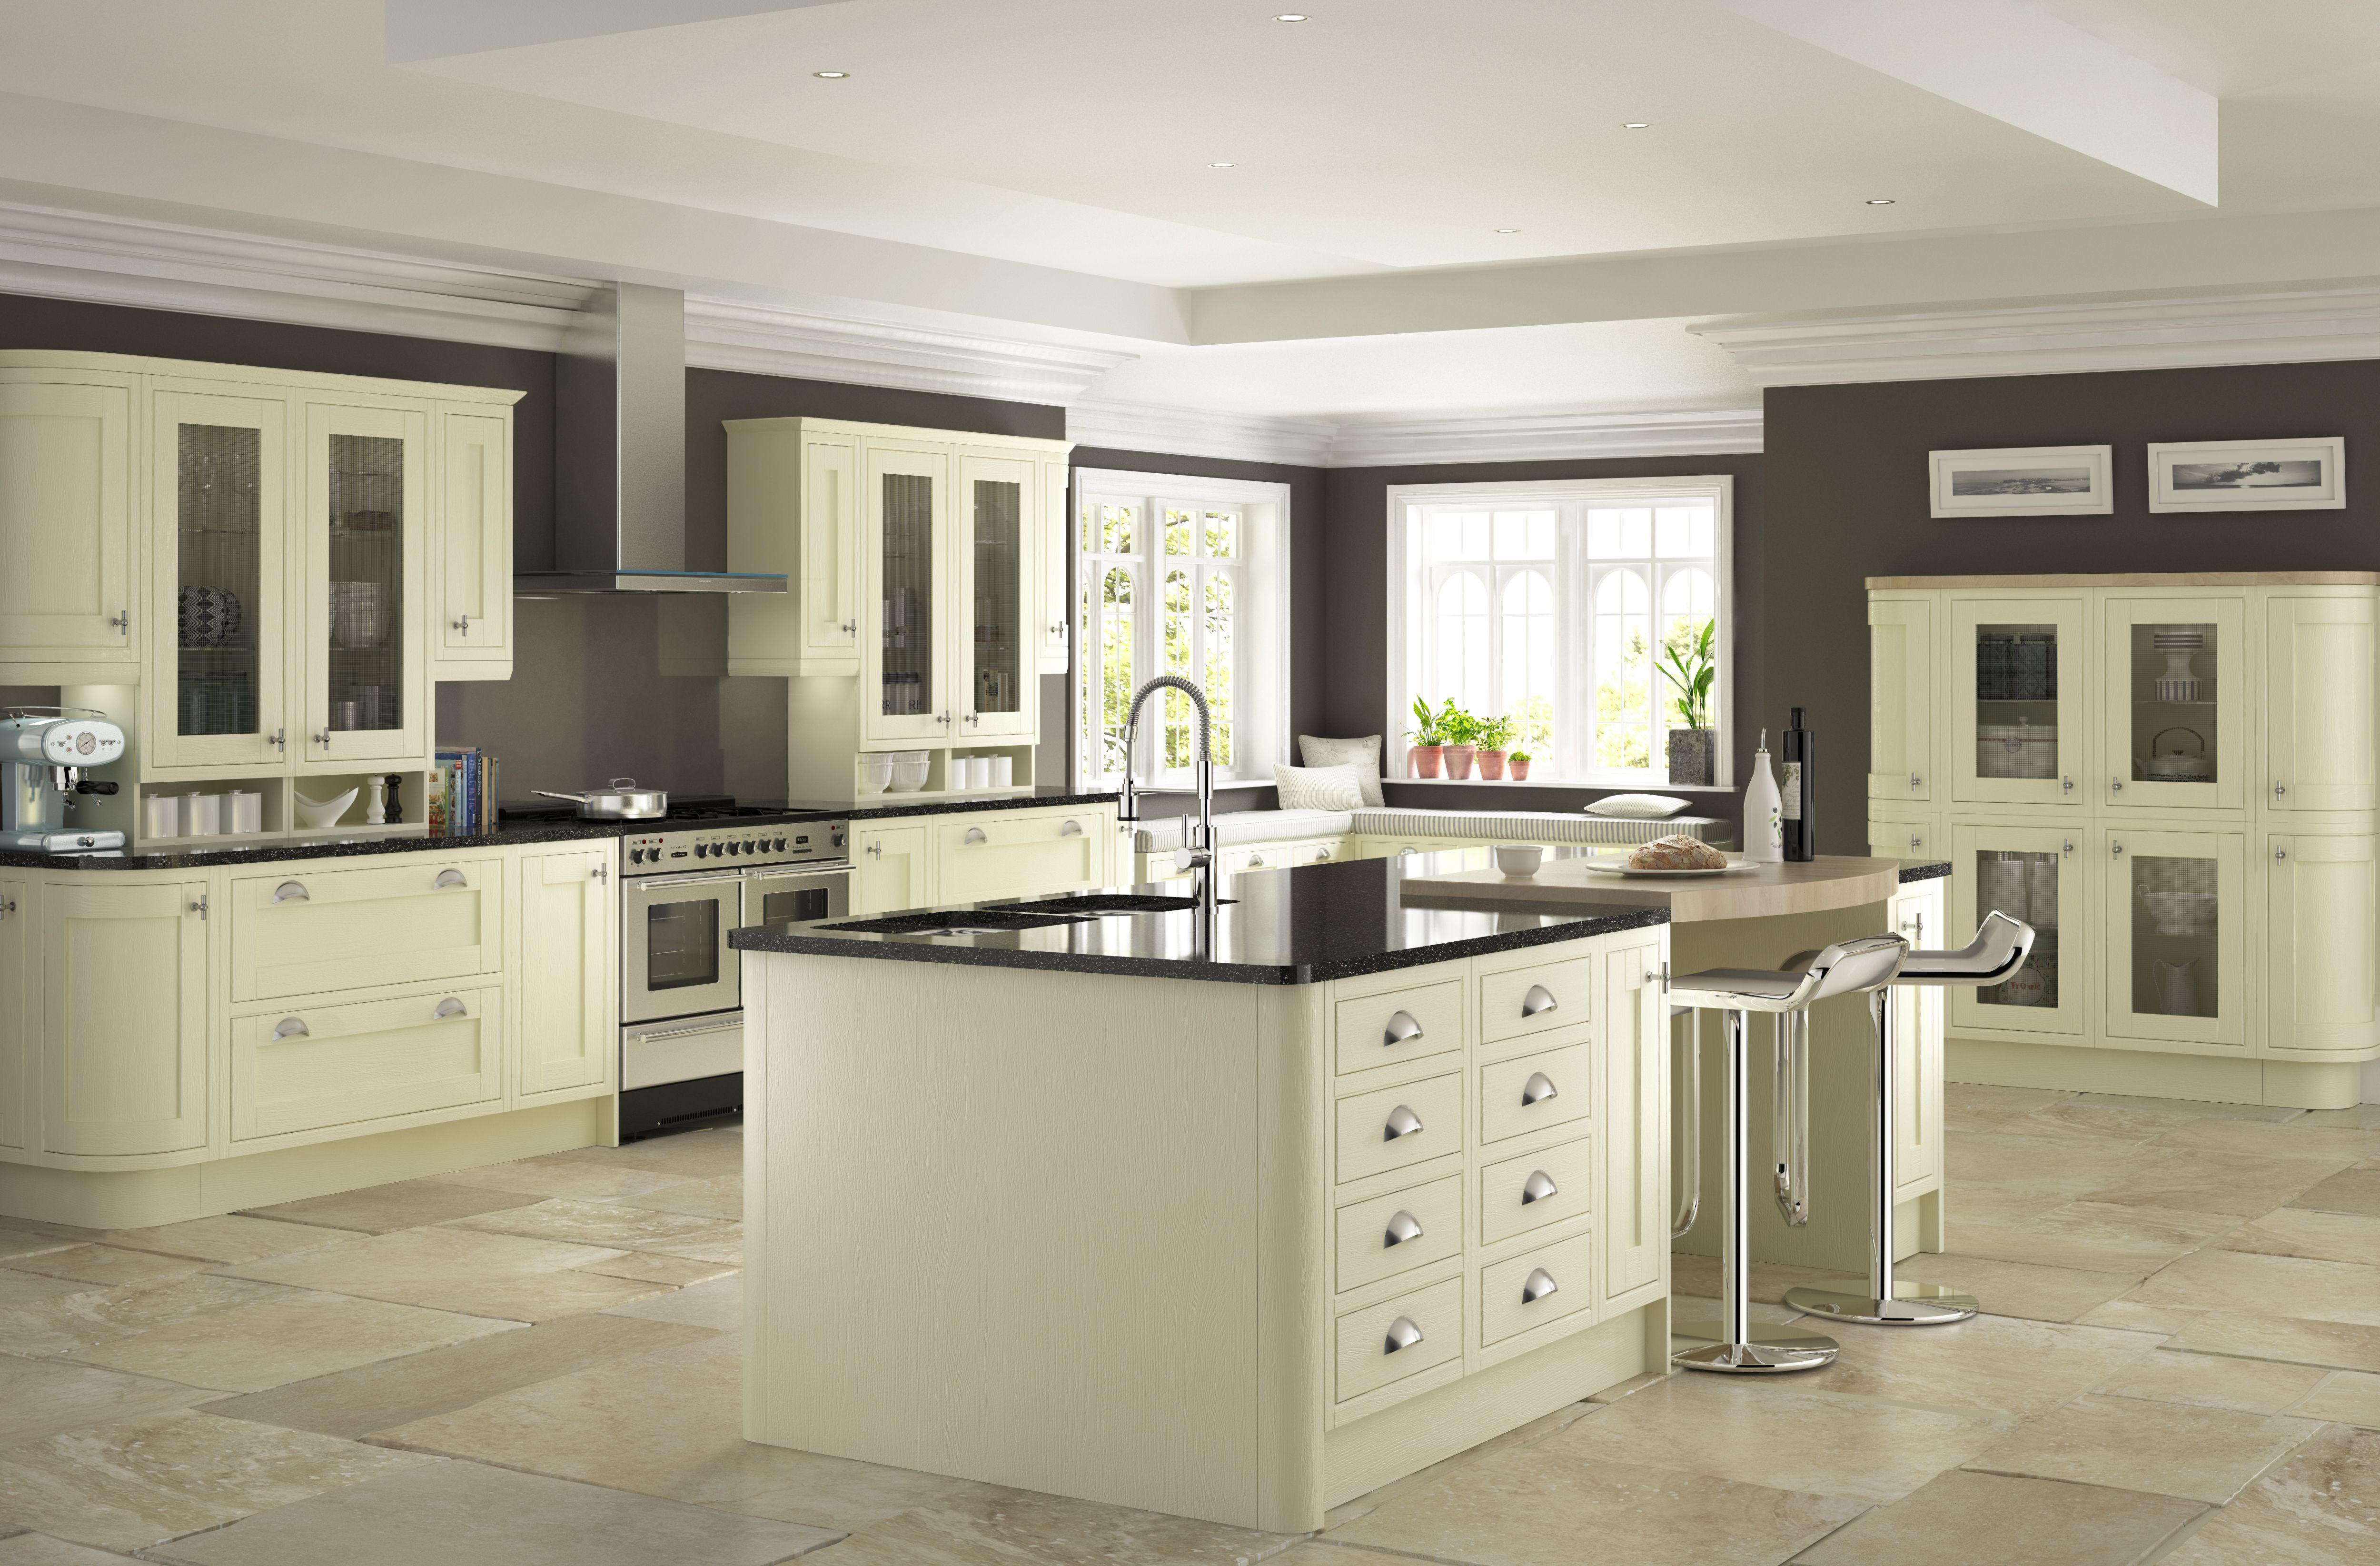 New England http//www.academyhome.co.uk/products/kitchens